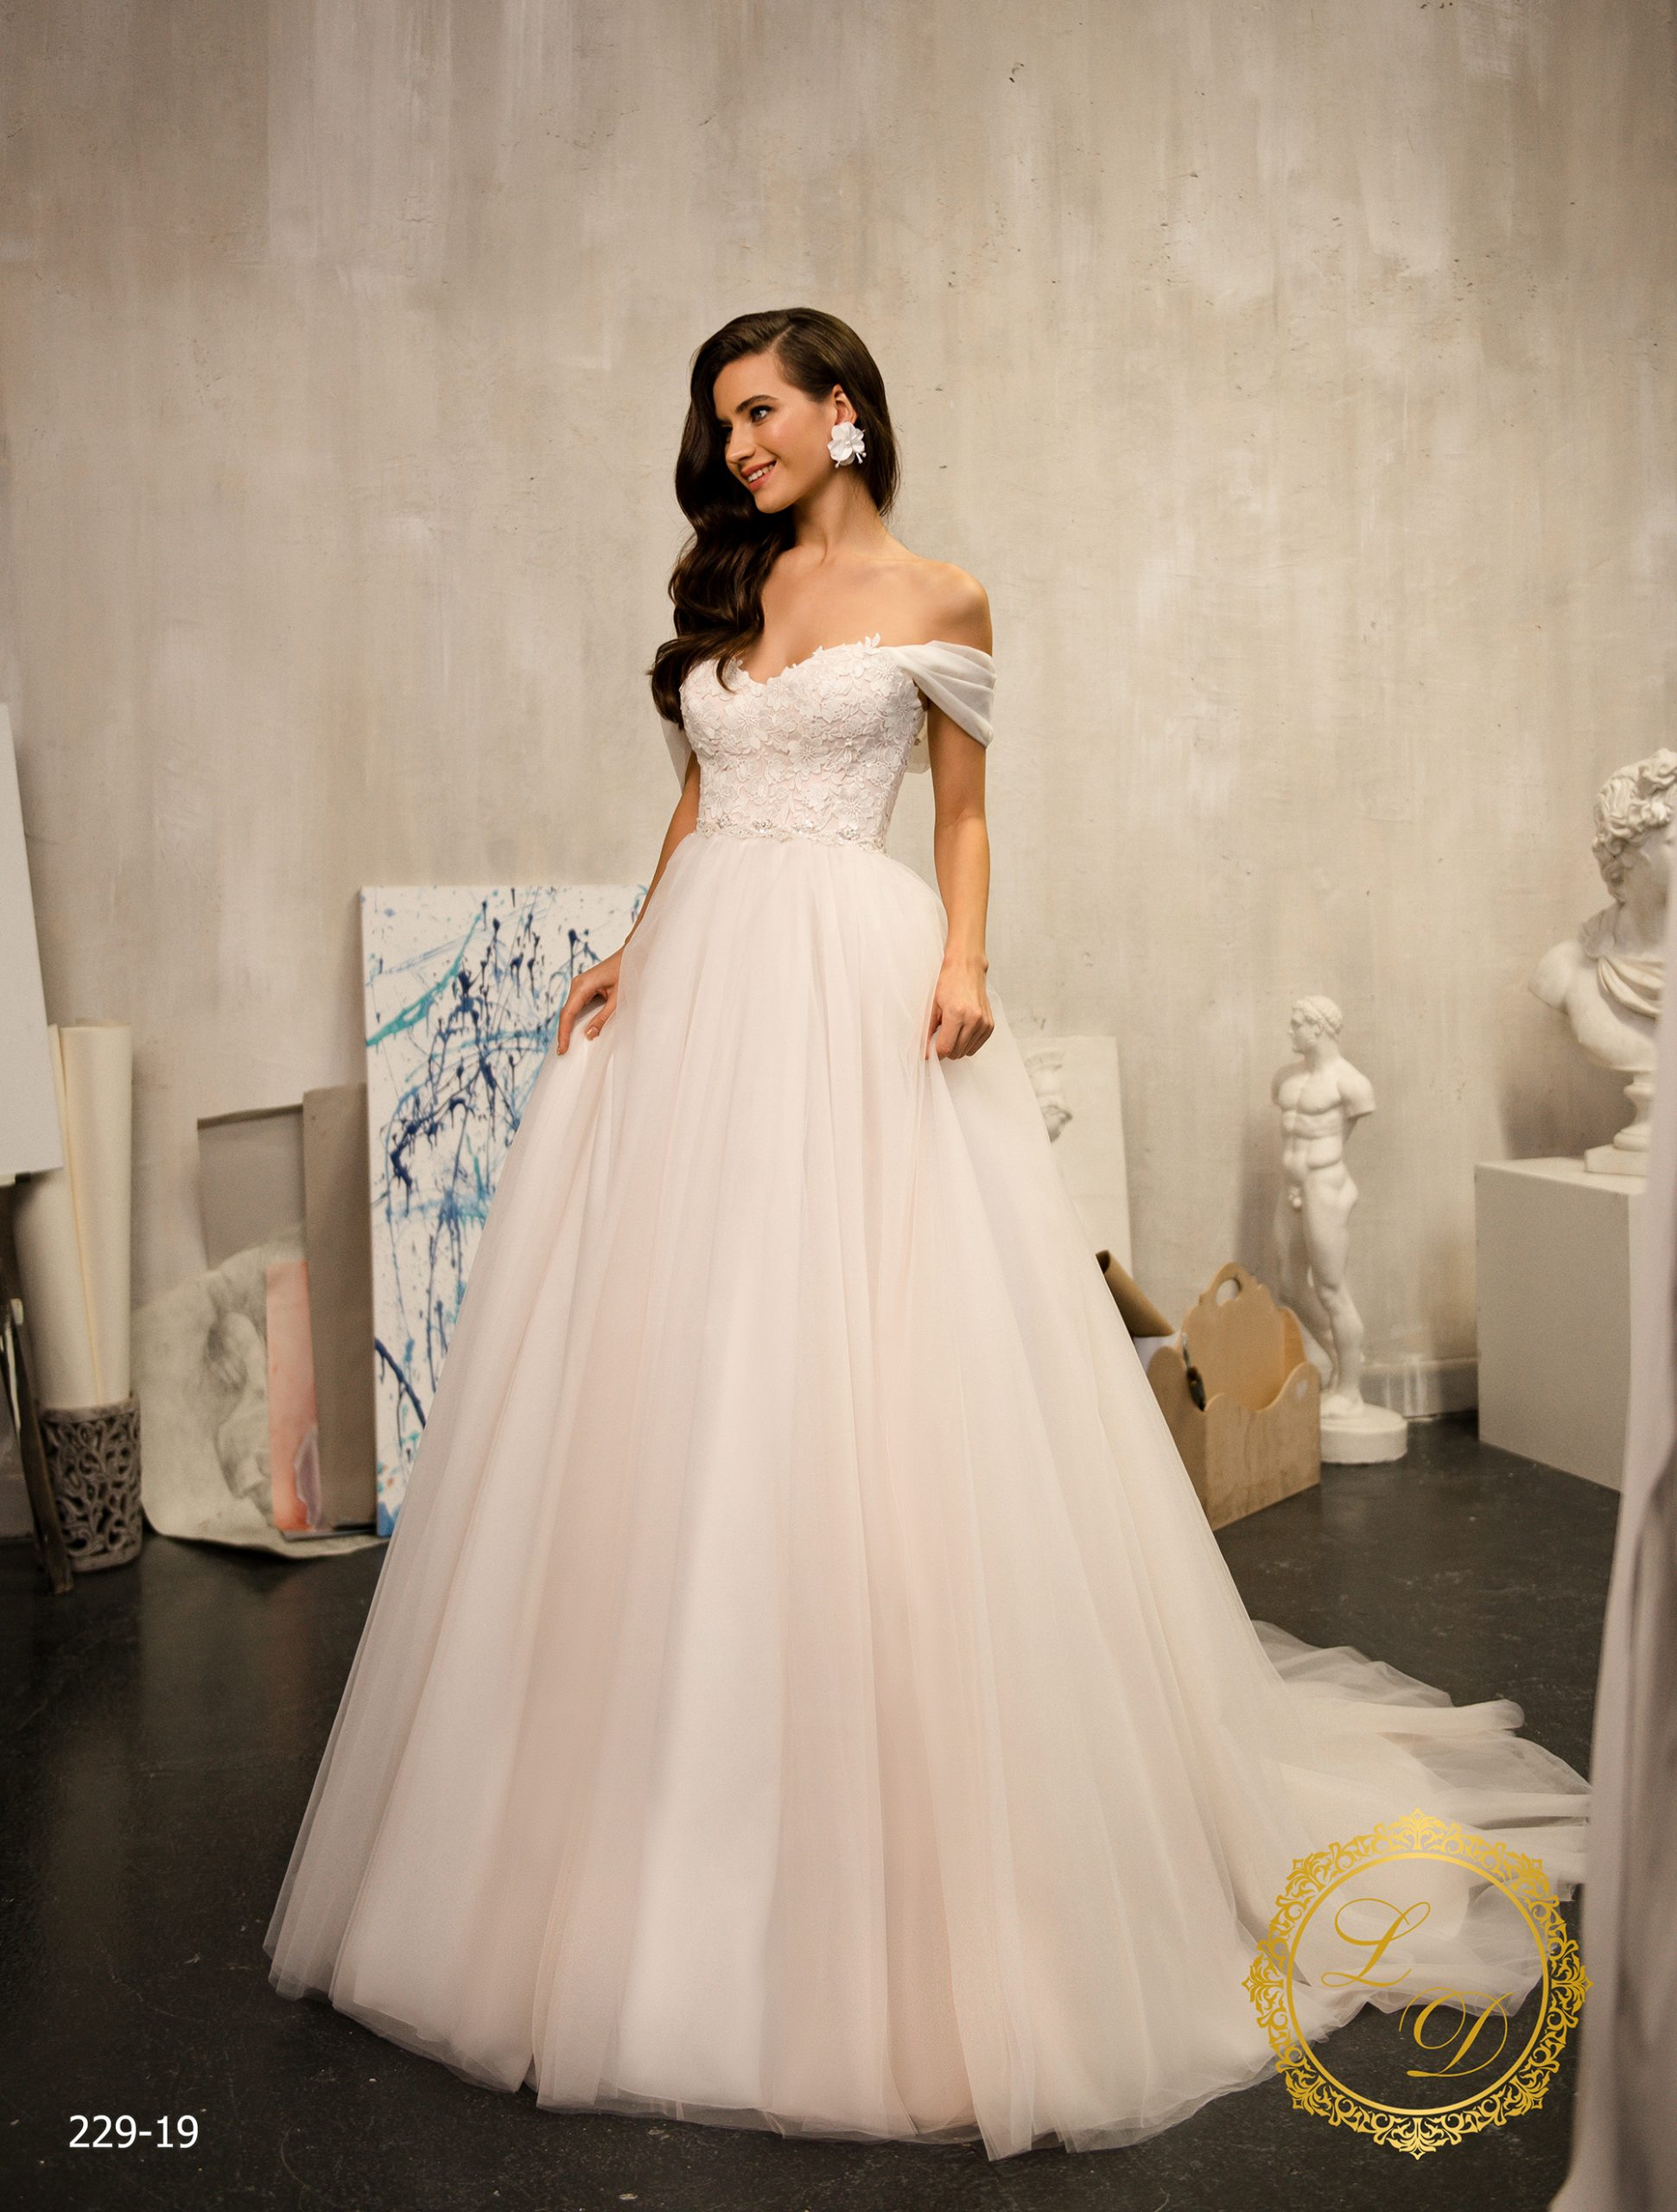 wedding-dress-229-19-1